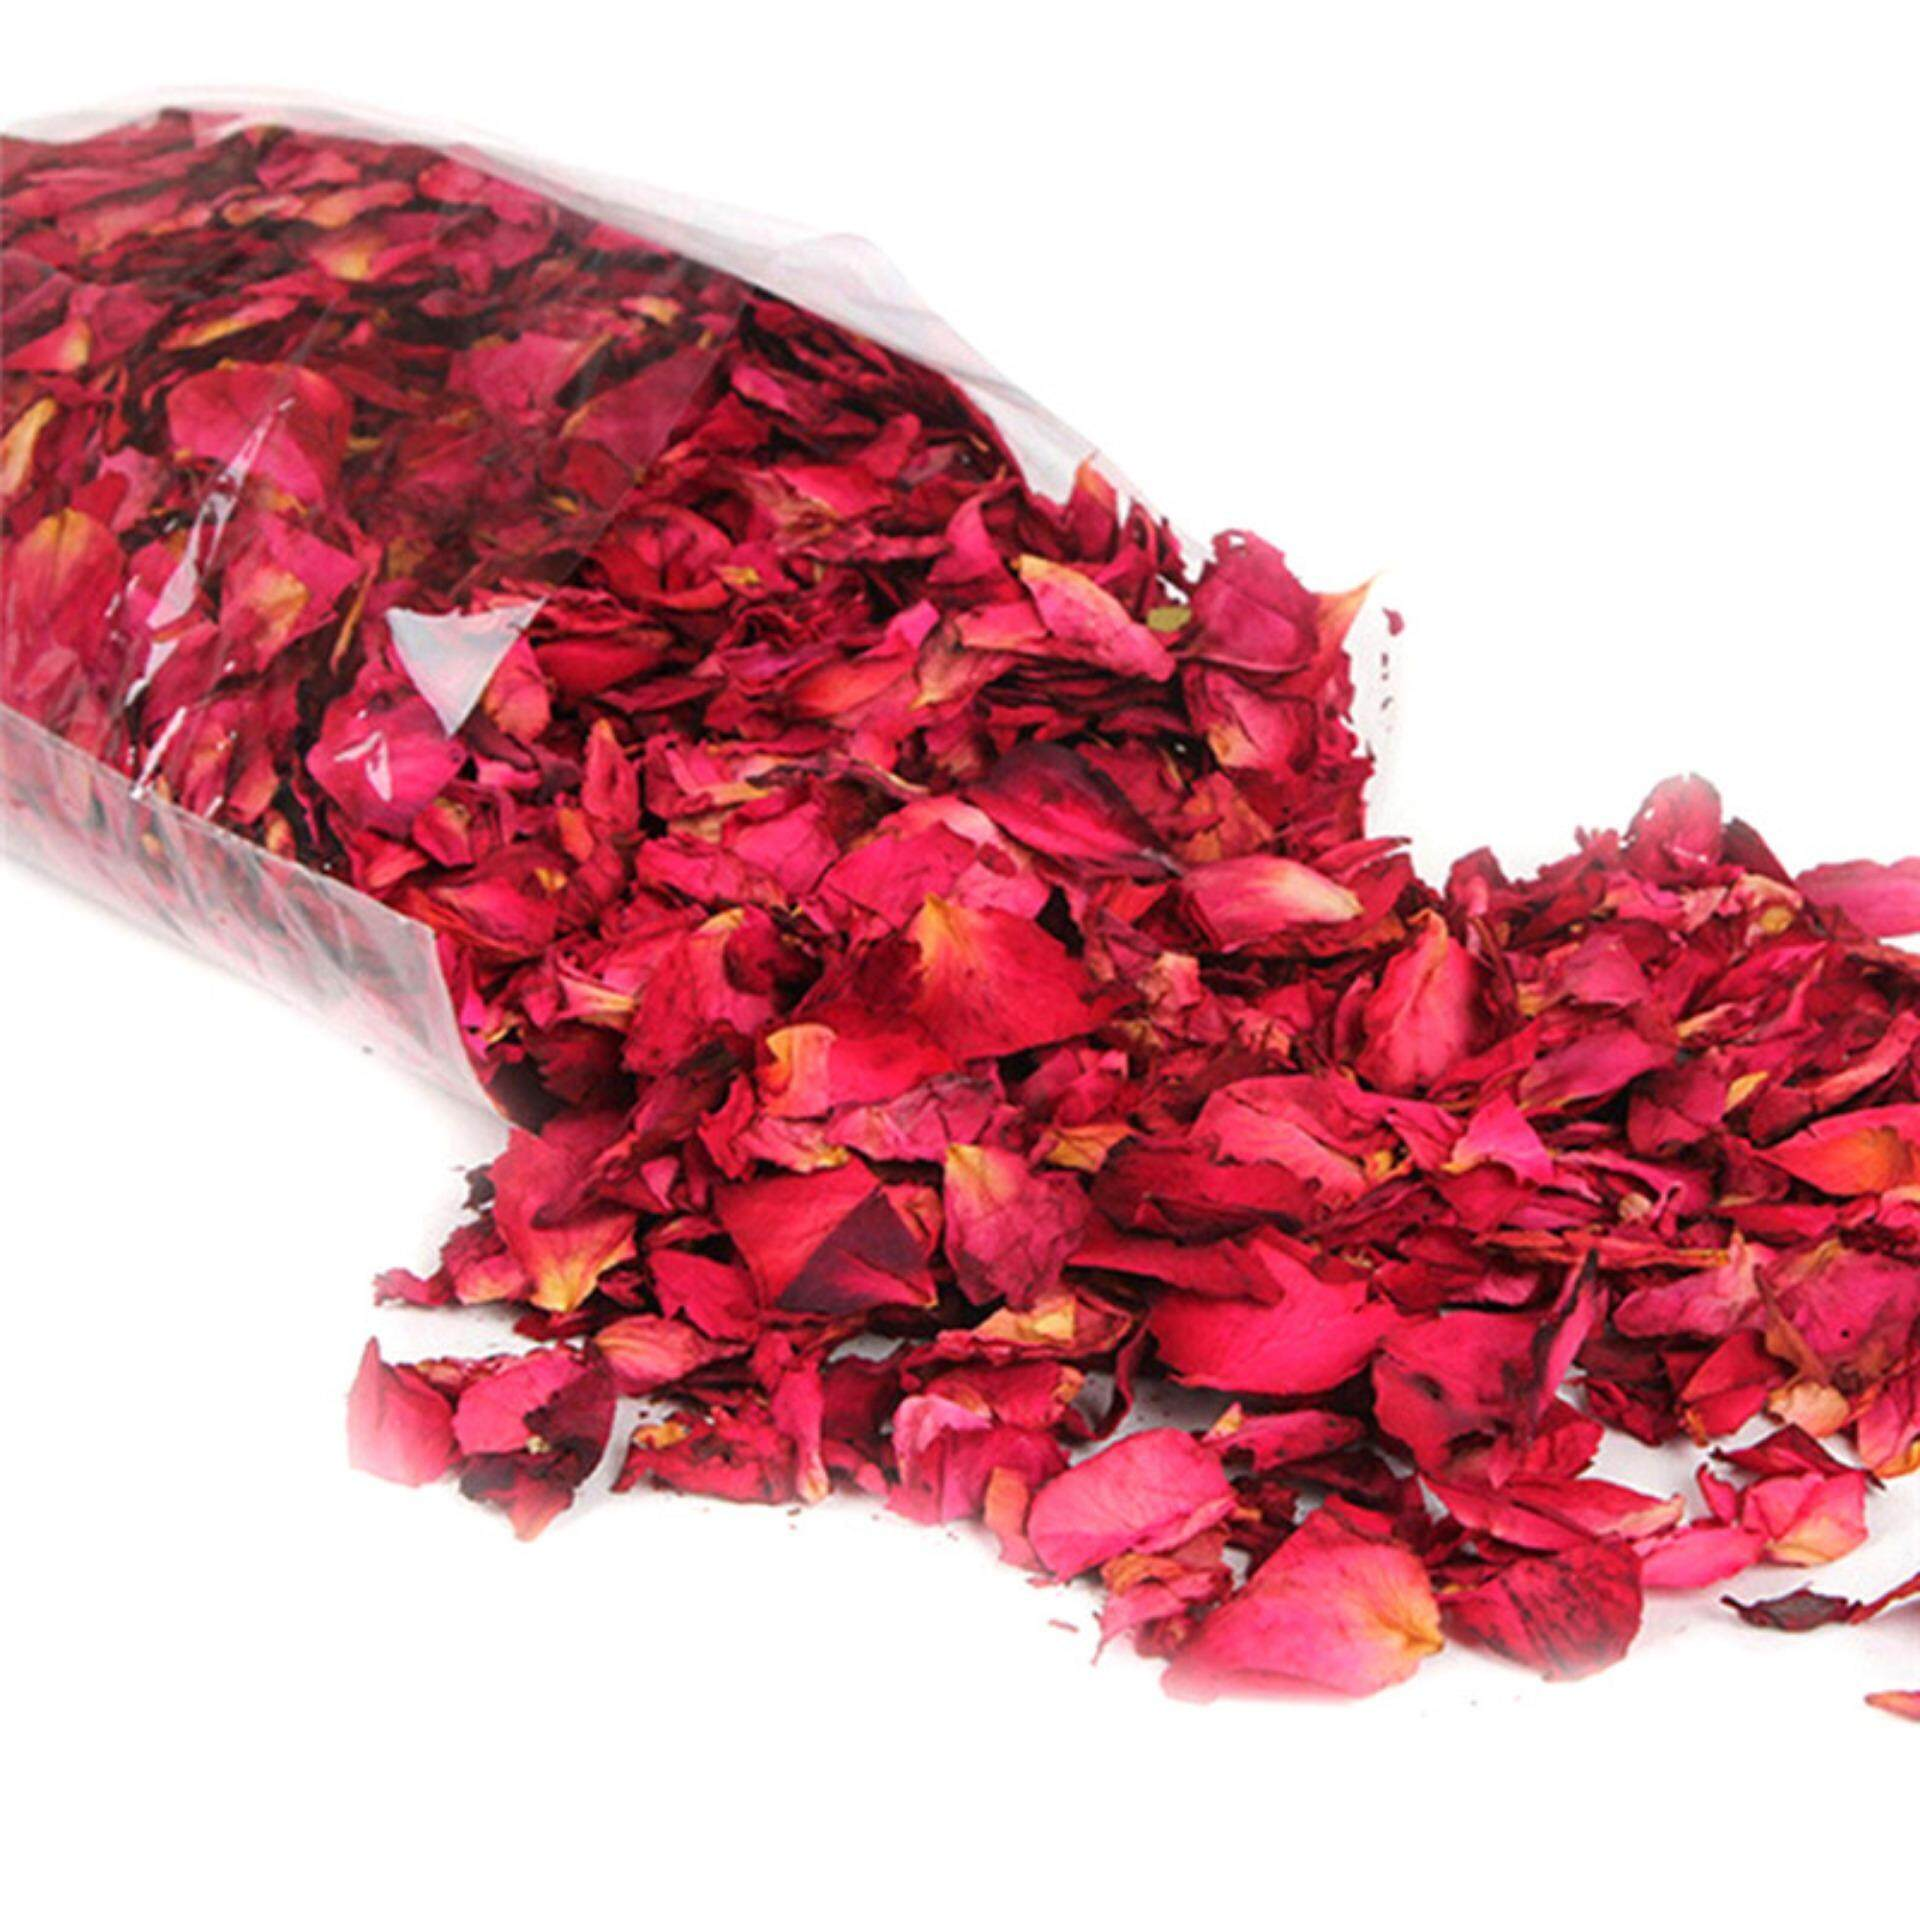 50g Dried Rose Petals Natural Dry Flower Petal Spa Whitening Shower Bath Tool